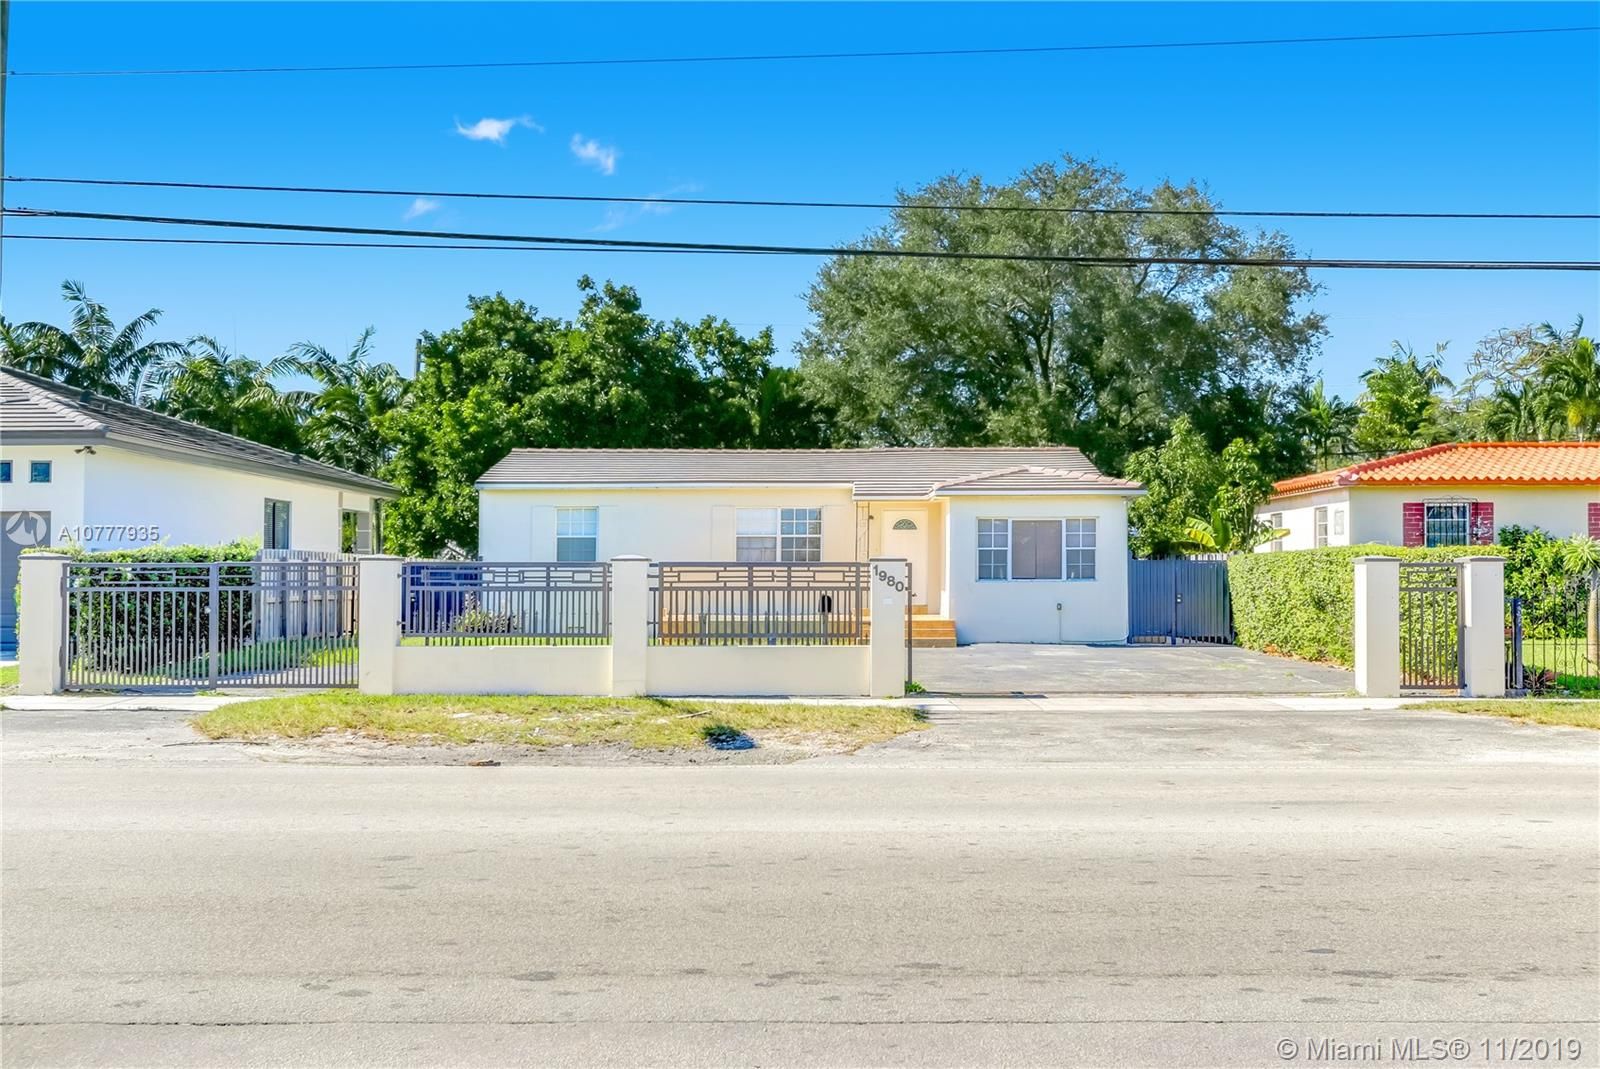 1980 SW 32nd Ave, Coral Gables, Florida